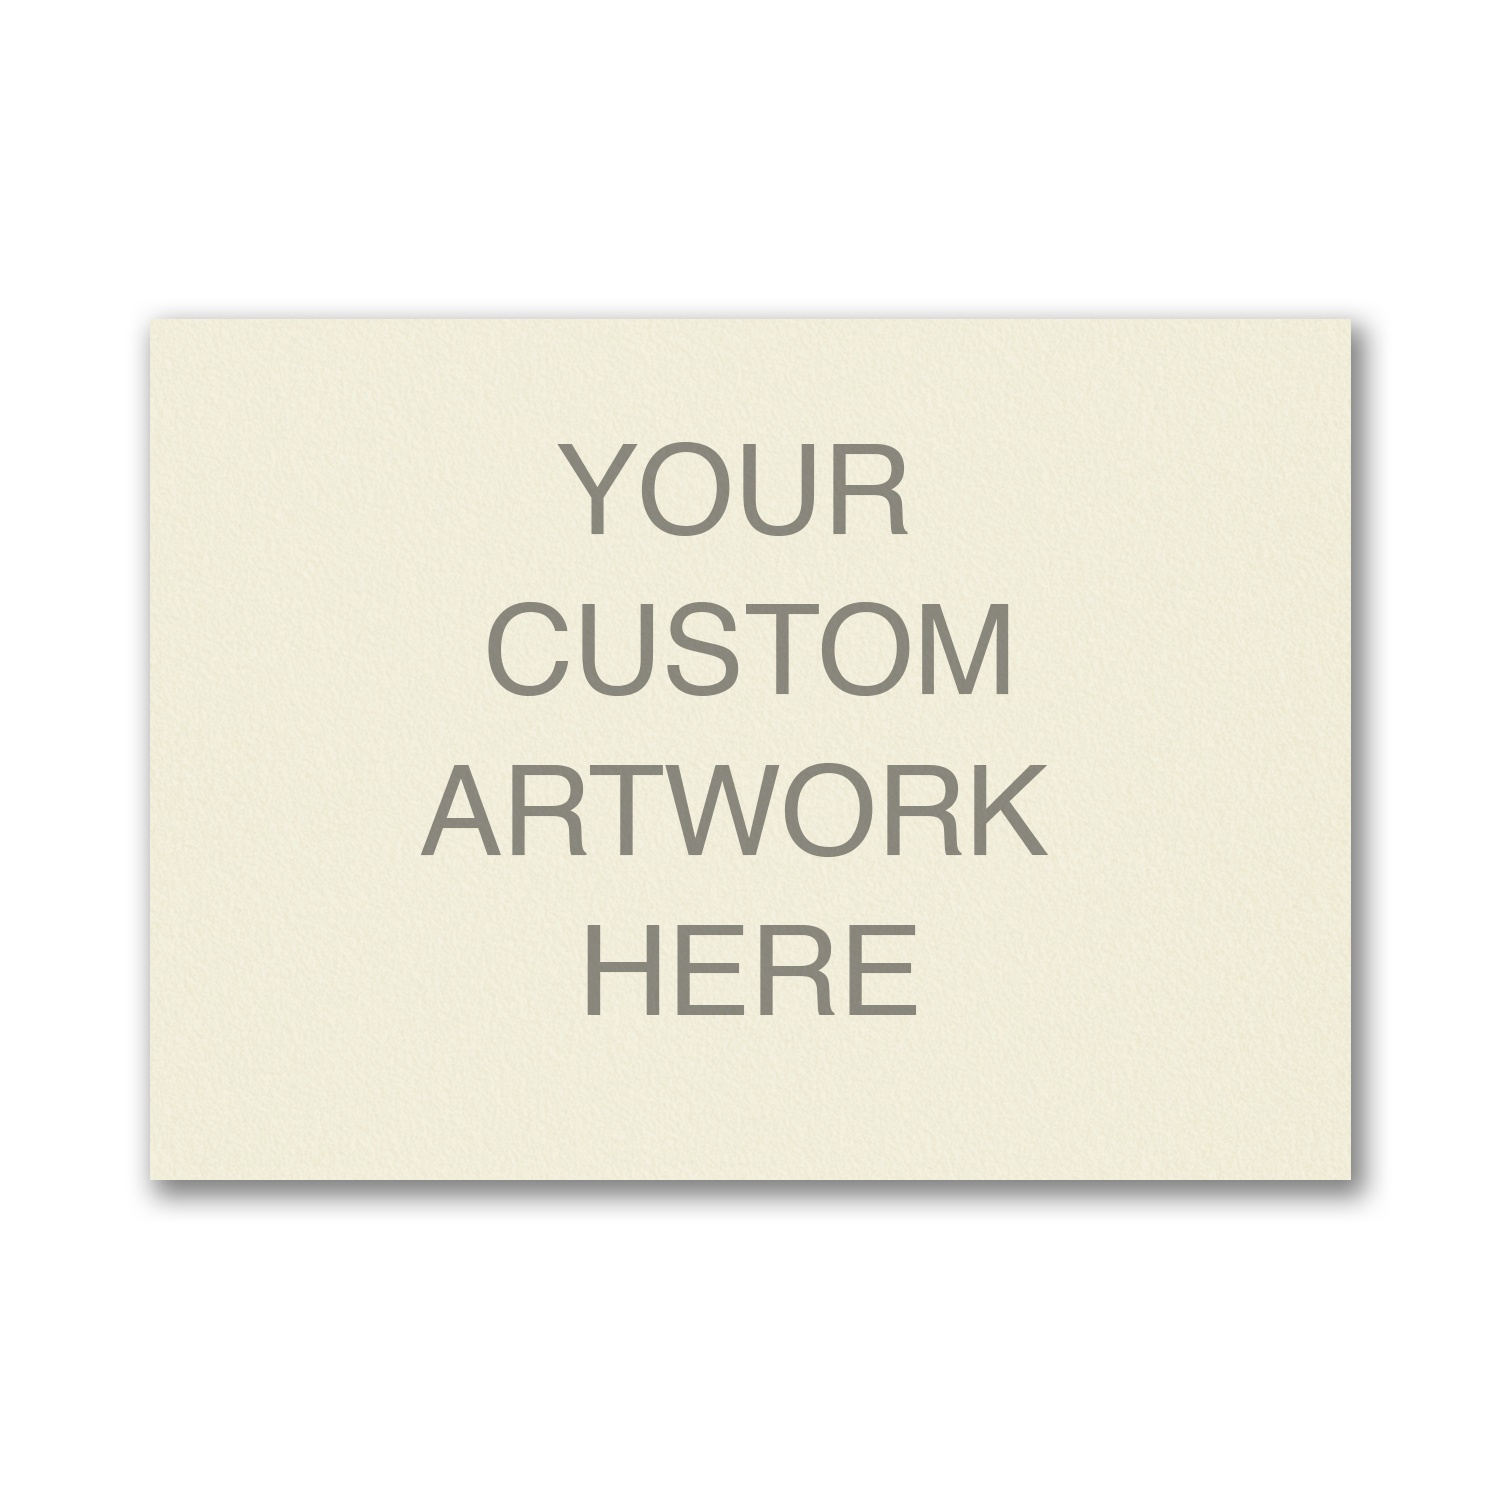 """Card Size:  4 7/8"""" x 3 1/2"""" Folded, No envelopes included can be purchased separately."""